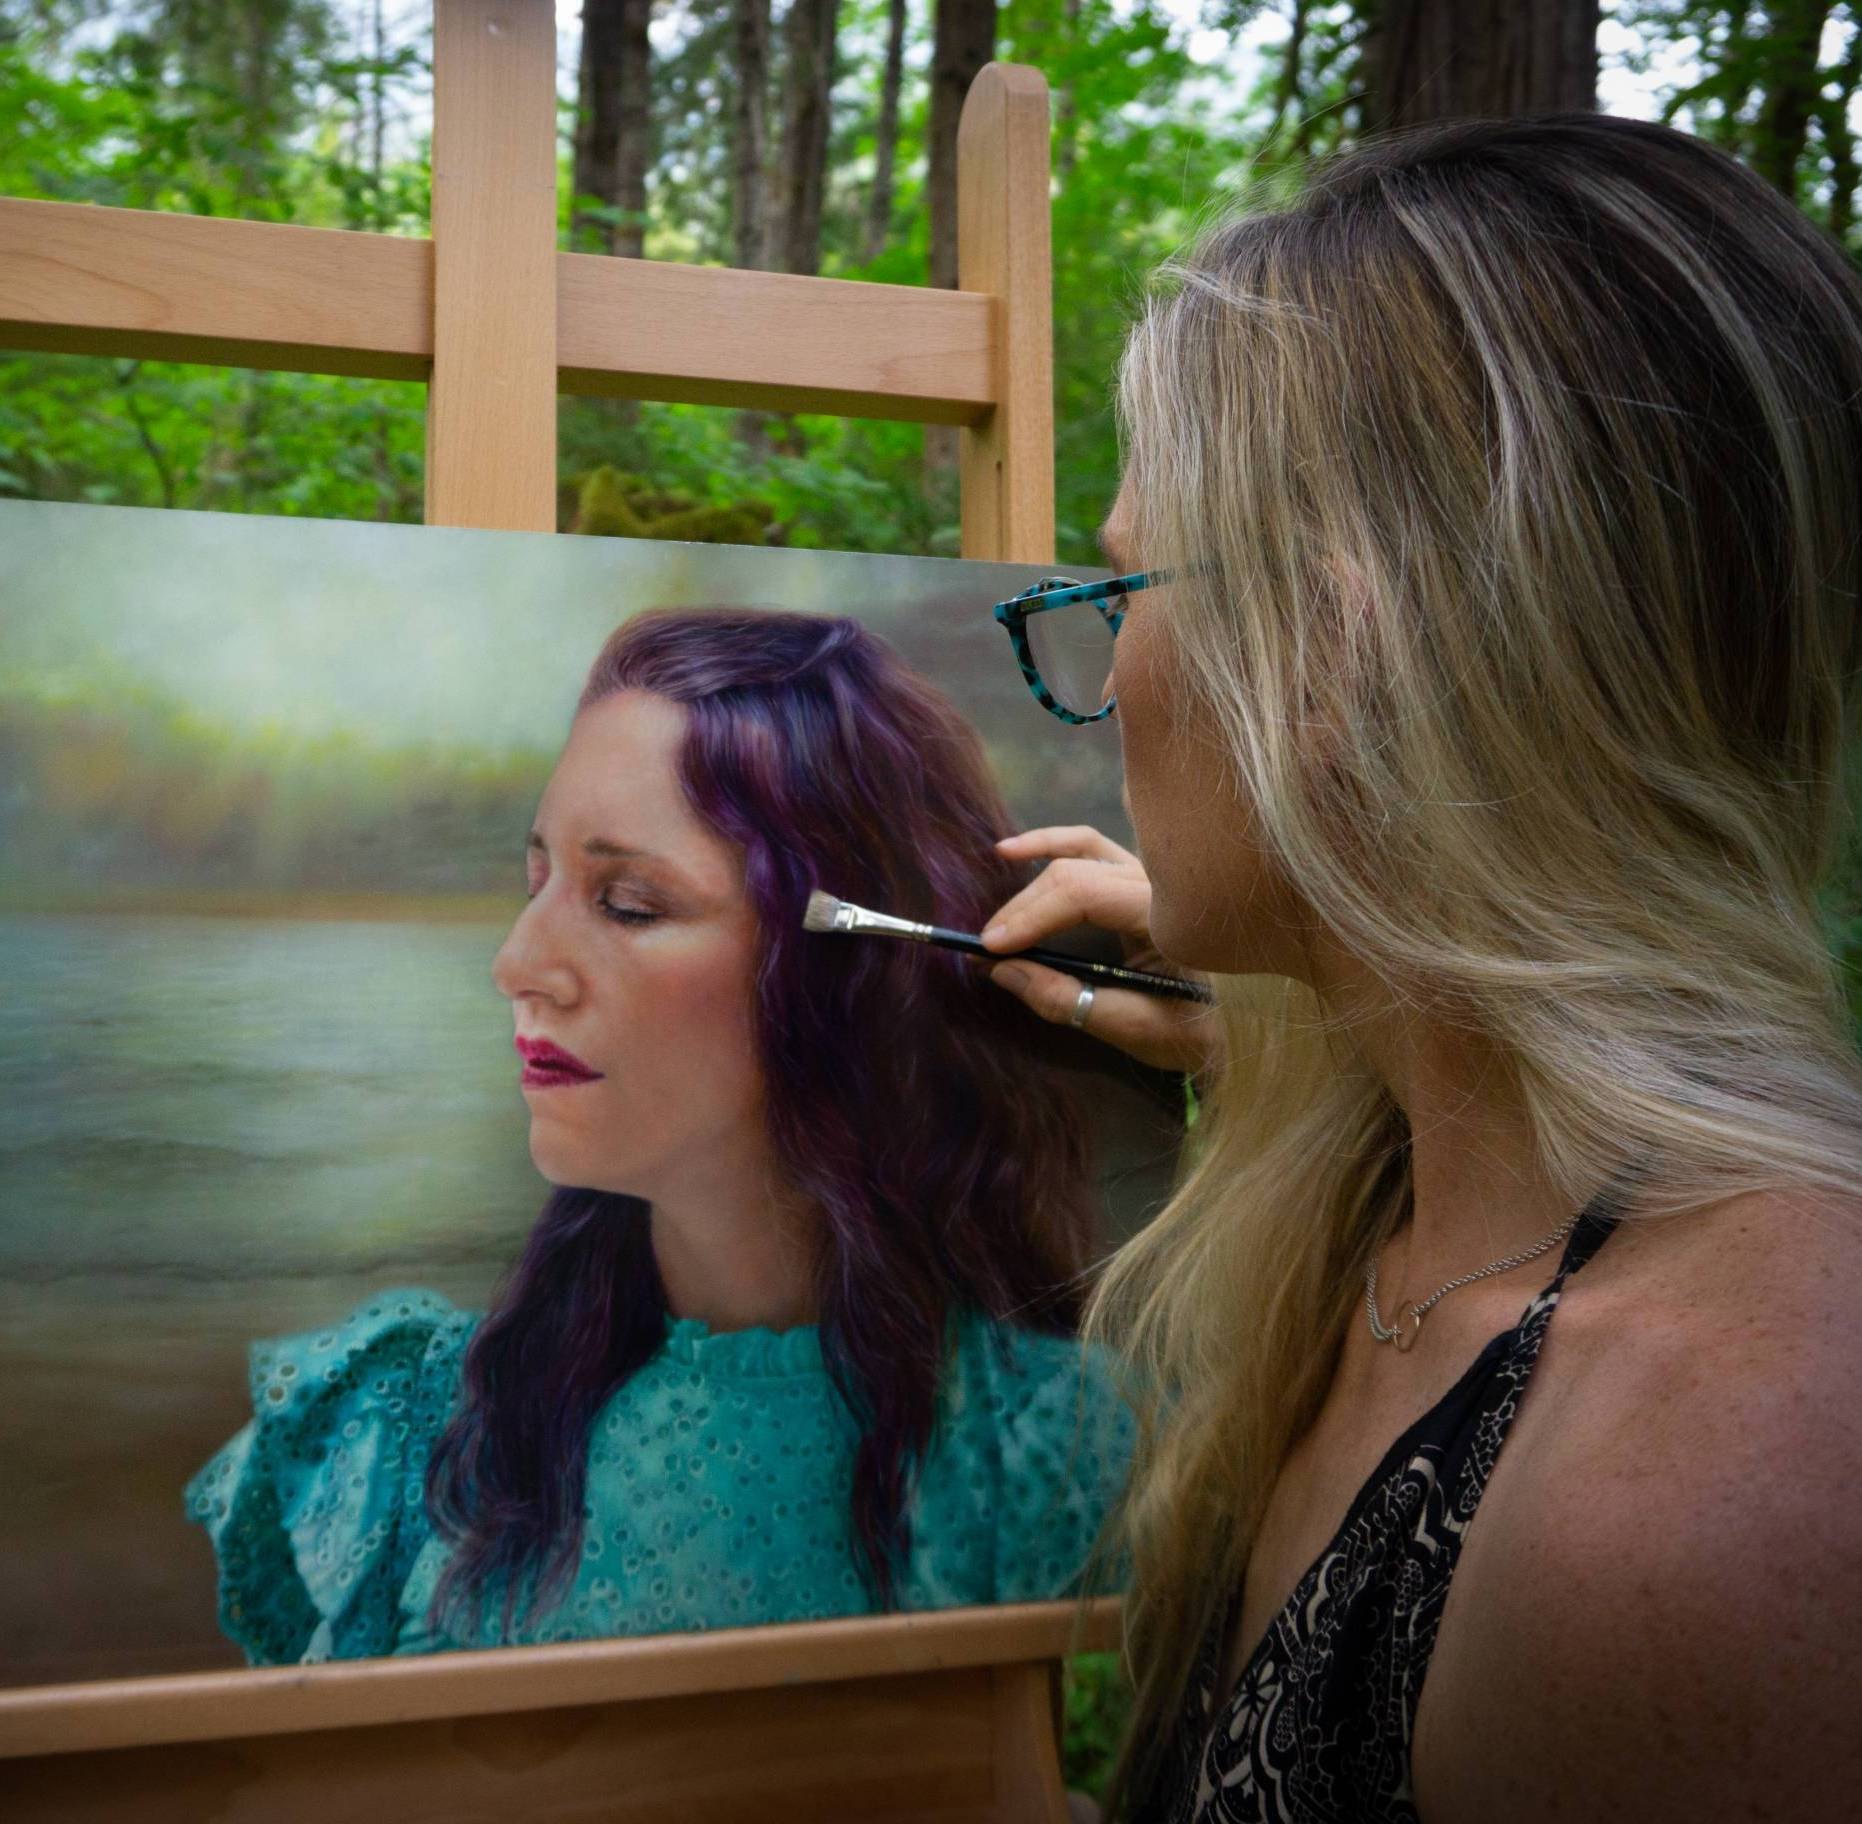 Kate Van Doren Perfectly Captures Jenna Benn Shersher's Beginning, Middle and Now